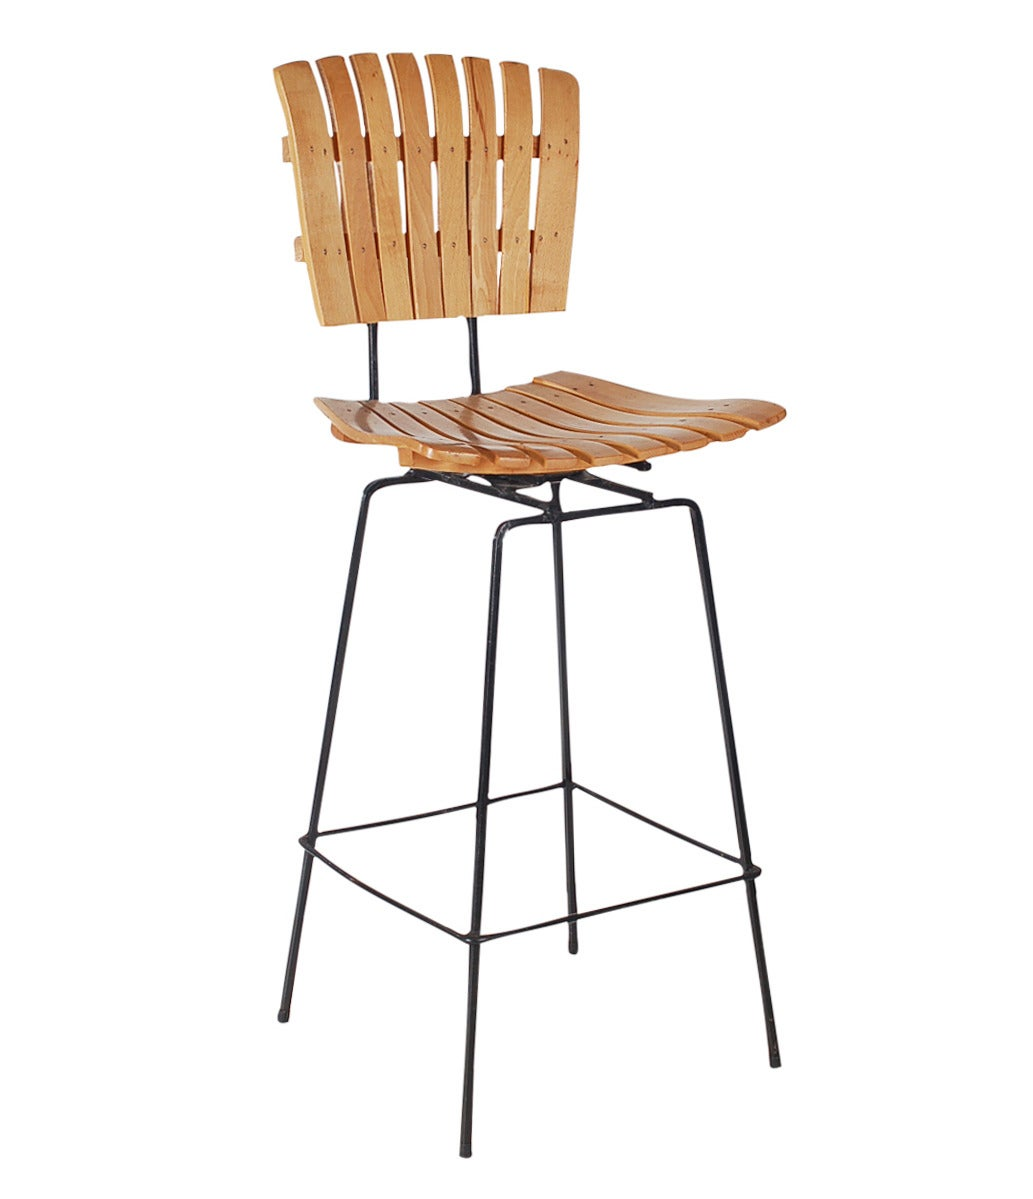 Wrought Iron And Slat Wood Bar Stools By Arthur Umanoff At 1stdibs